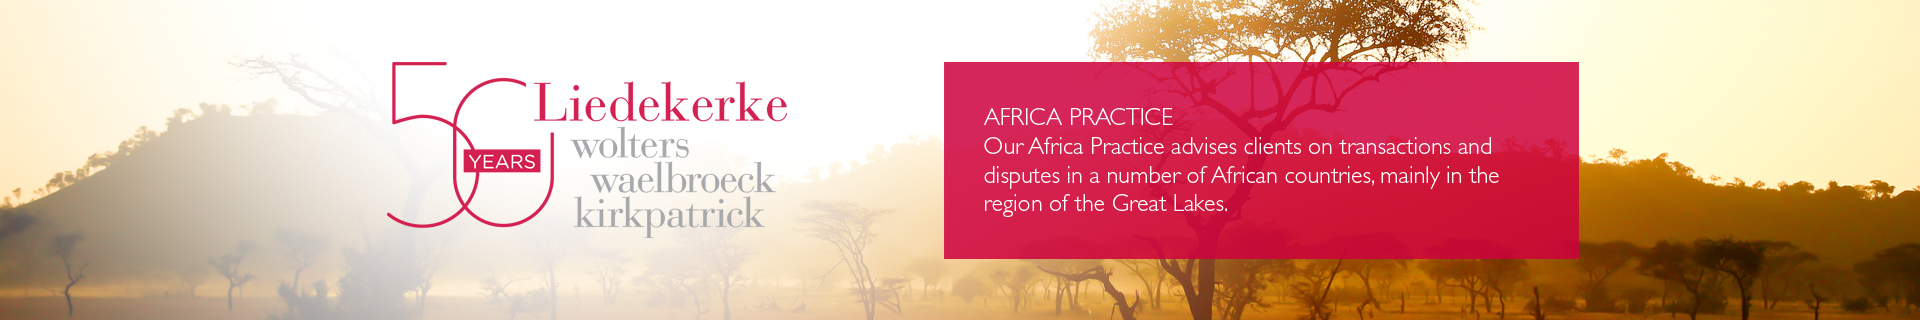 Our Africa practice